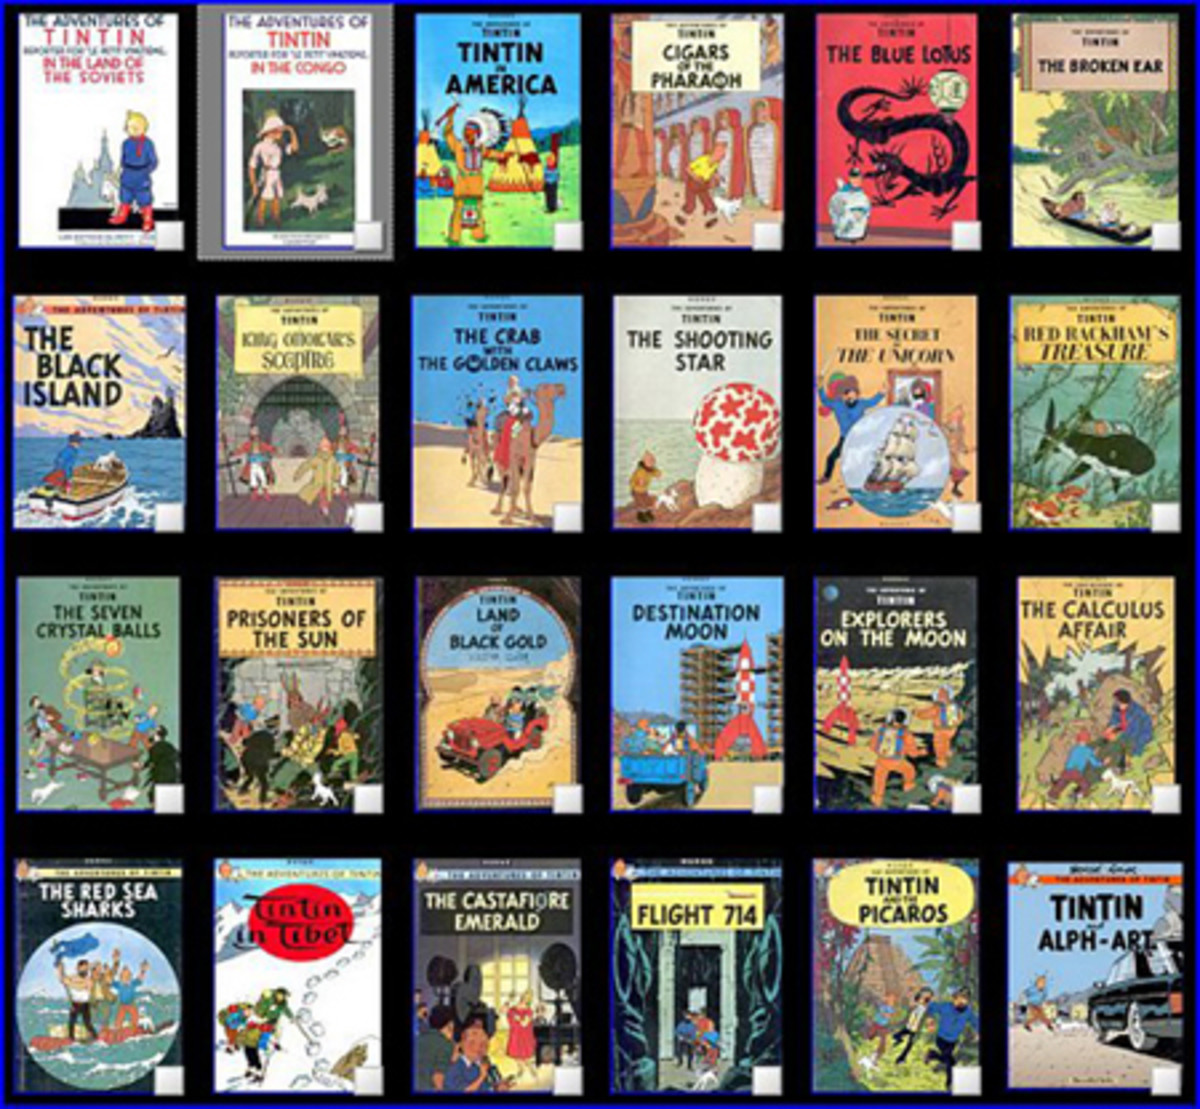 The complete Tintin collection